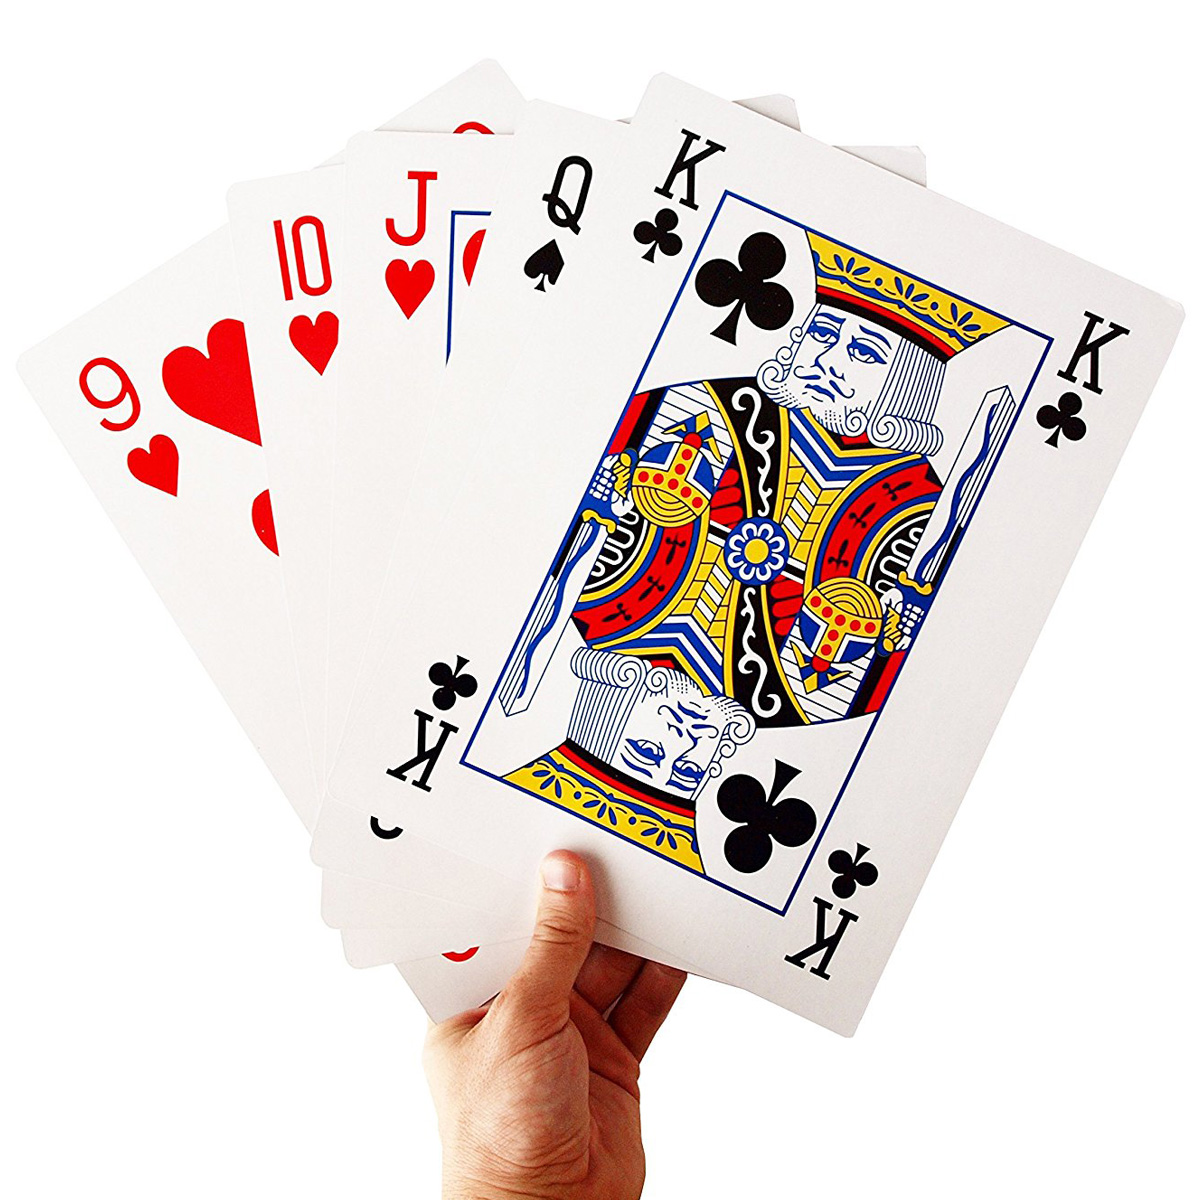 Fun games to play with poker cards get clucky slot